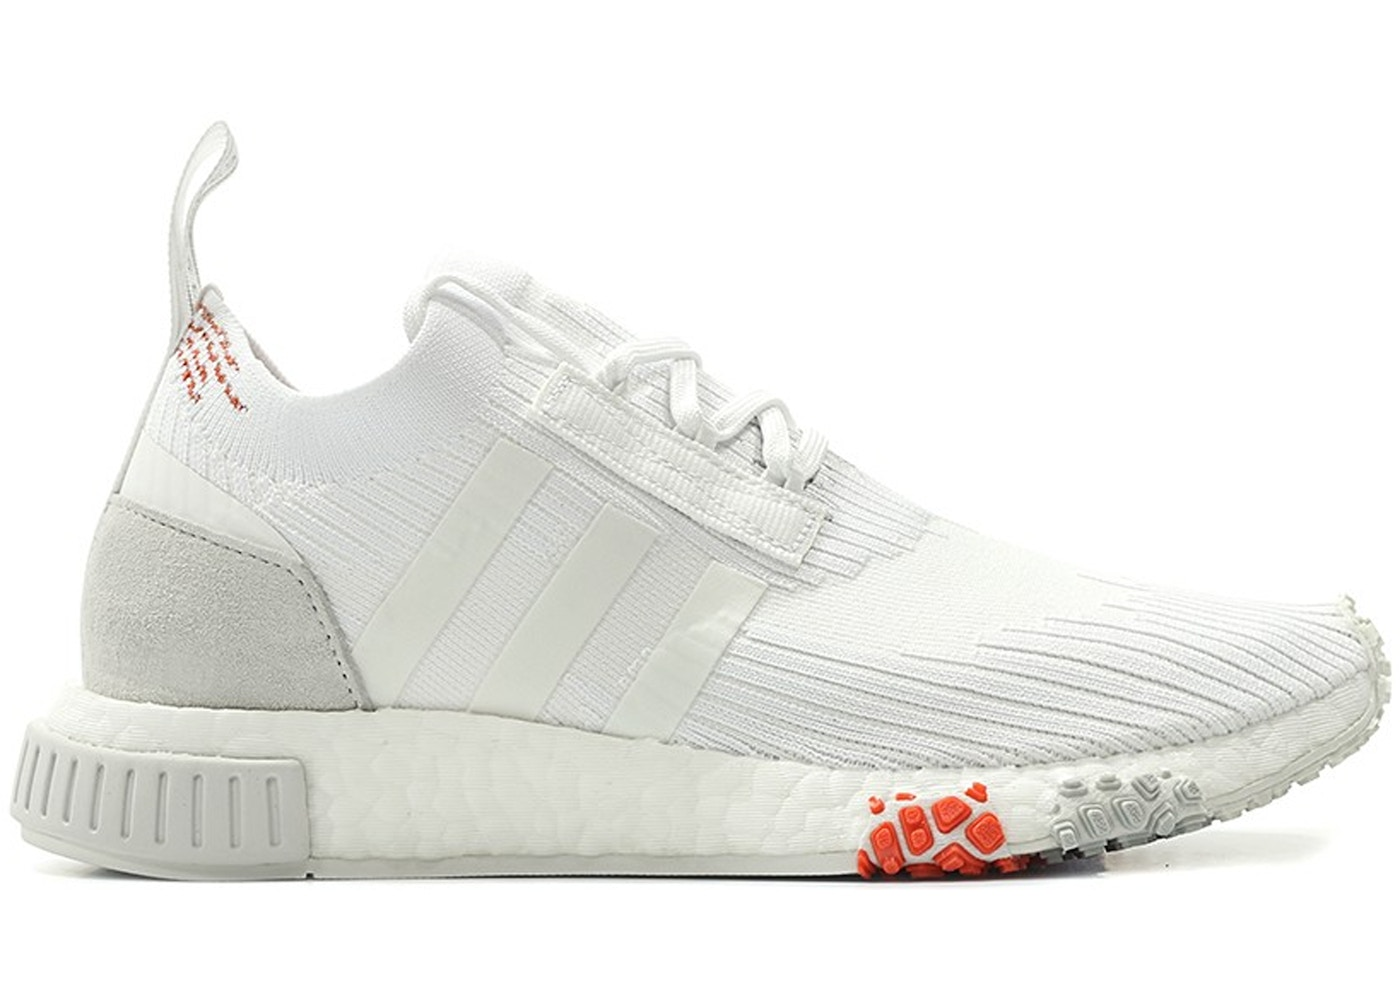 dacd4b23ba944 adidas NMD Size 6 Shoes - Lowest Ask